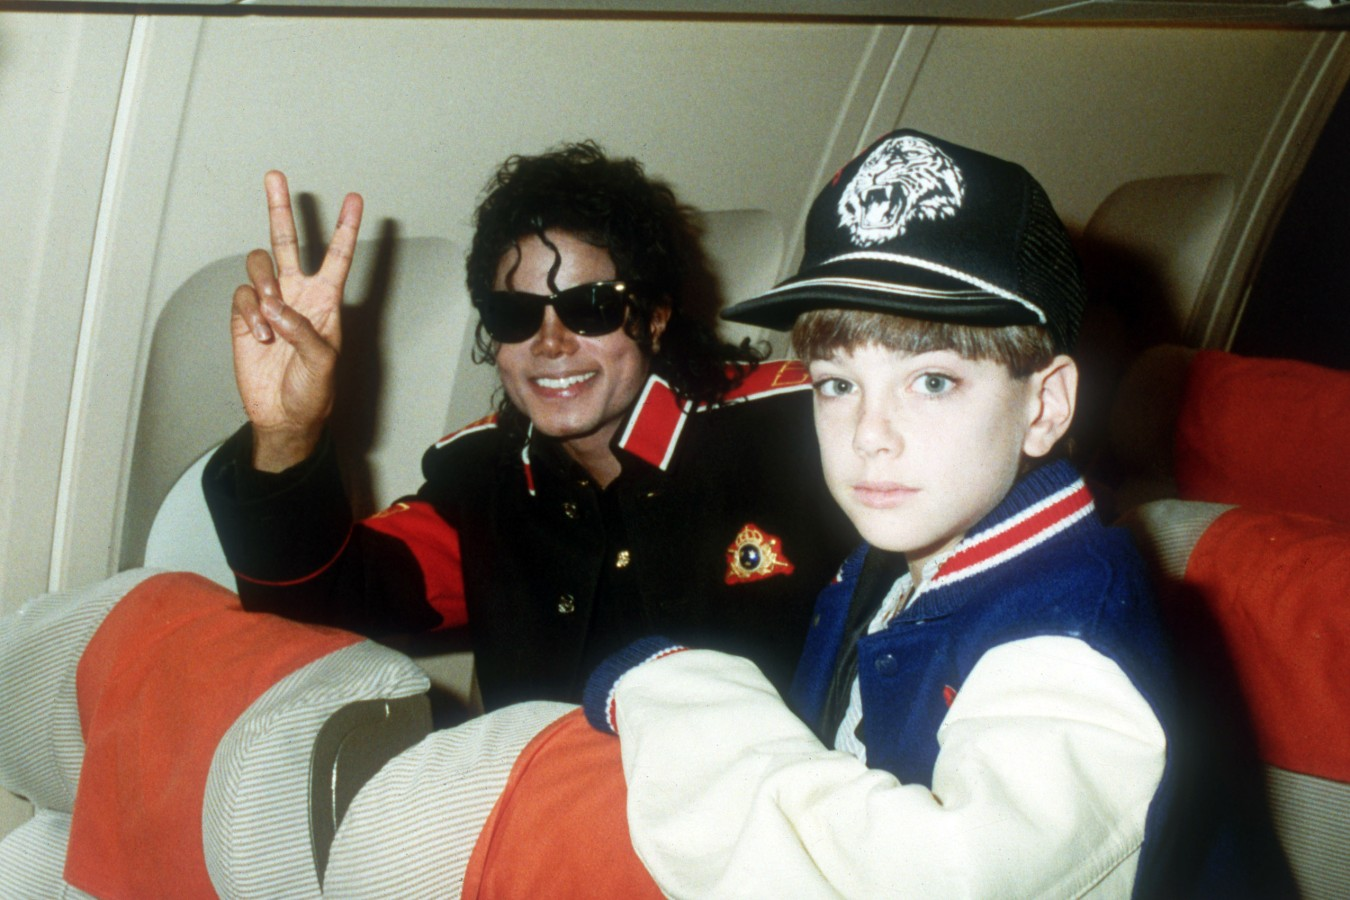 'Leaving Neverland' Director Dan Reed on Refuting Michael Jackson Defenders, the Psychology of Child Sexual Abuse, and a Potential Sequel